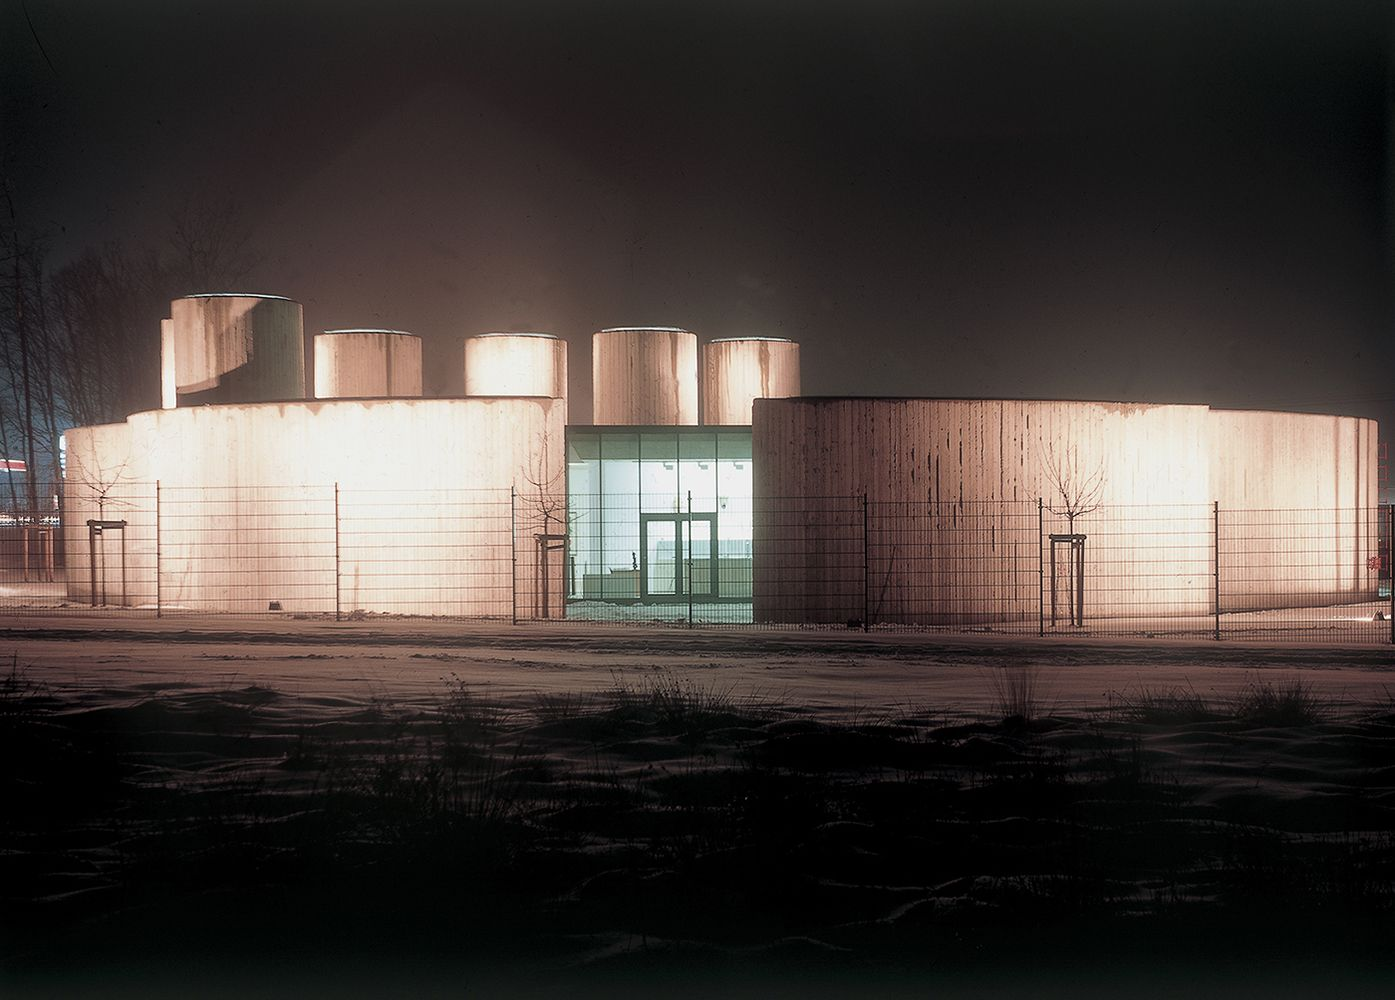 Architekt Bad Honnef 2001 - Rackey Gallery - Bad-honnef - Germany